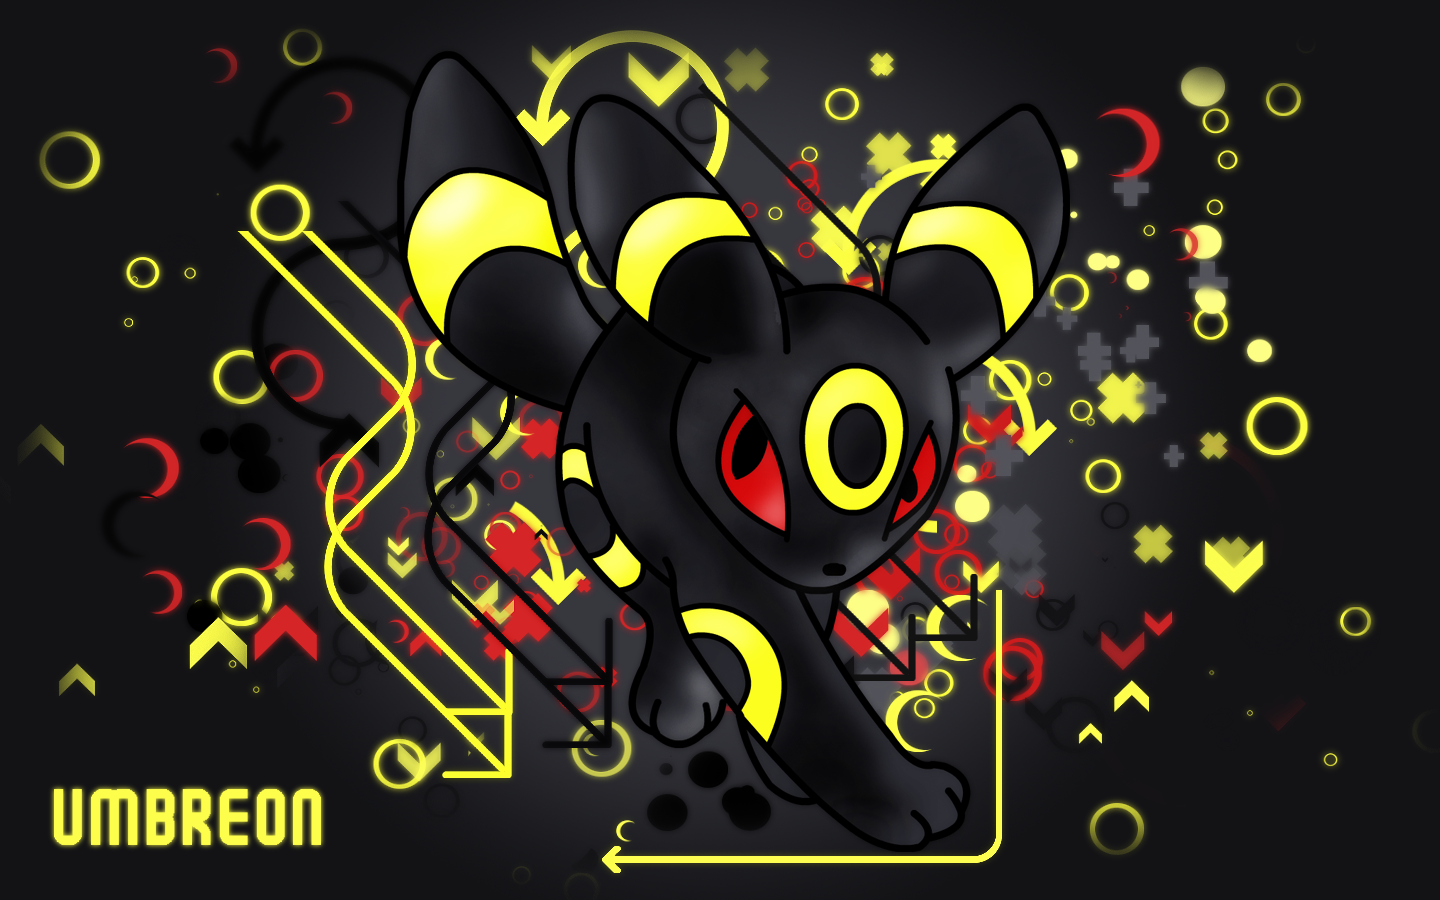 Umbreon Desktop Background by KirkButler 1440x900